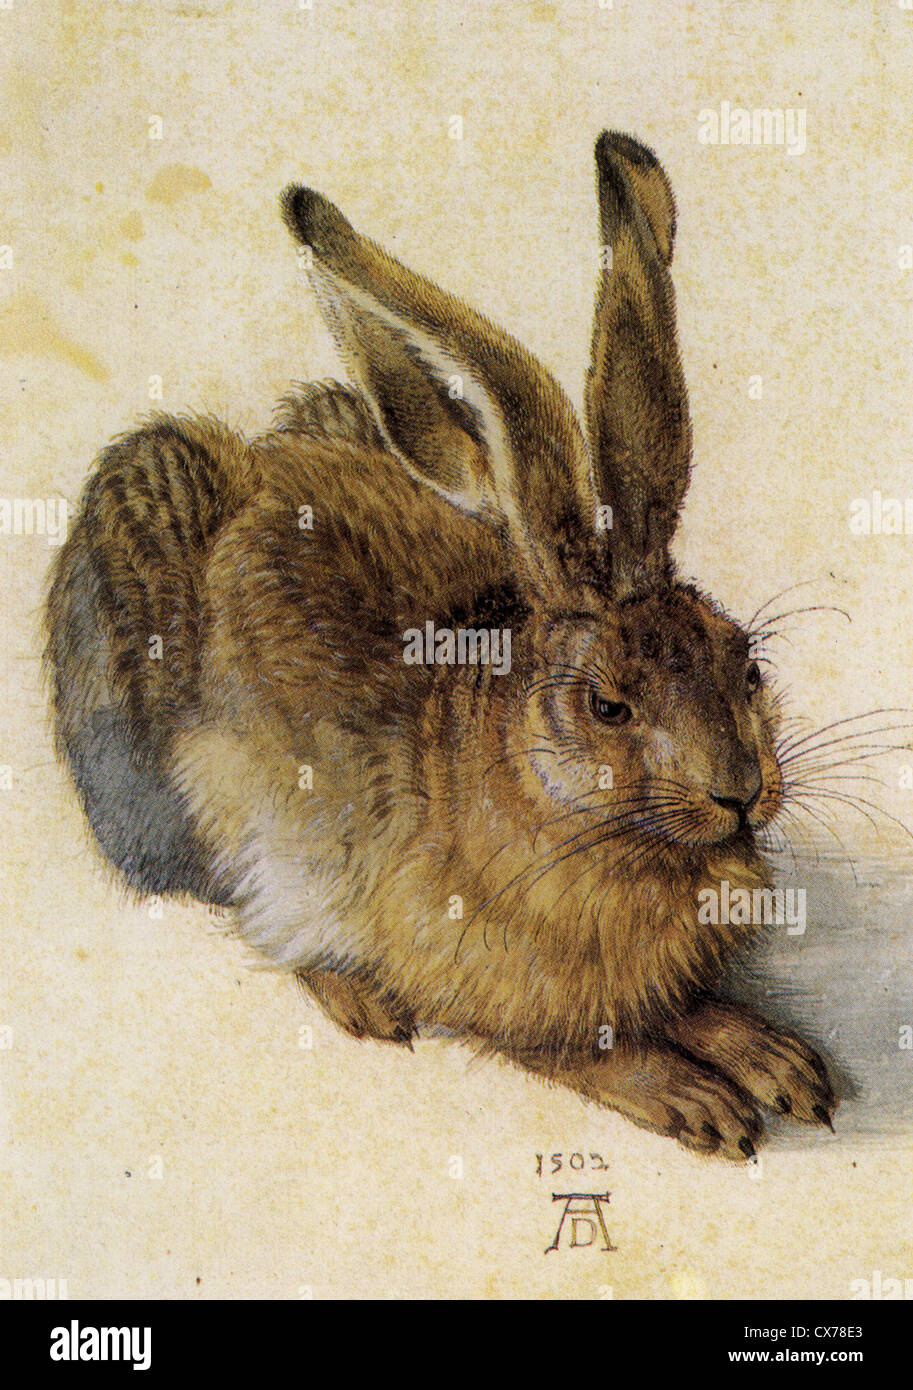 ALBRECHT DURER (1471-1528)  Watercolour of a Young Hare dated 1502 held at the Albertina museum in Vienna - Stock Image